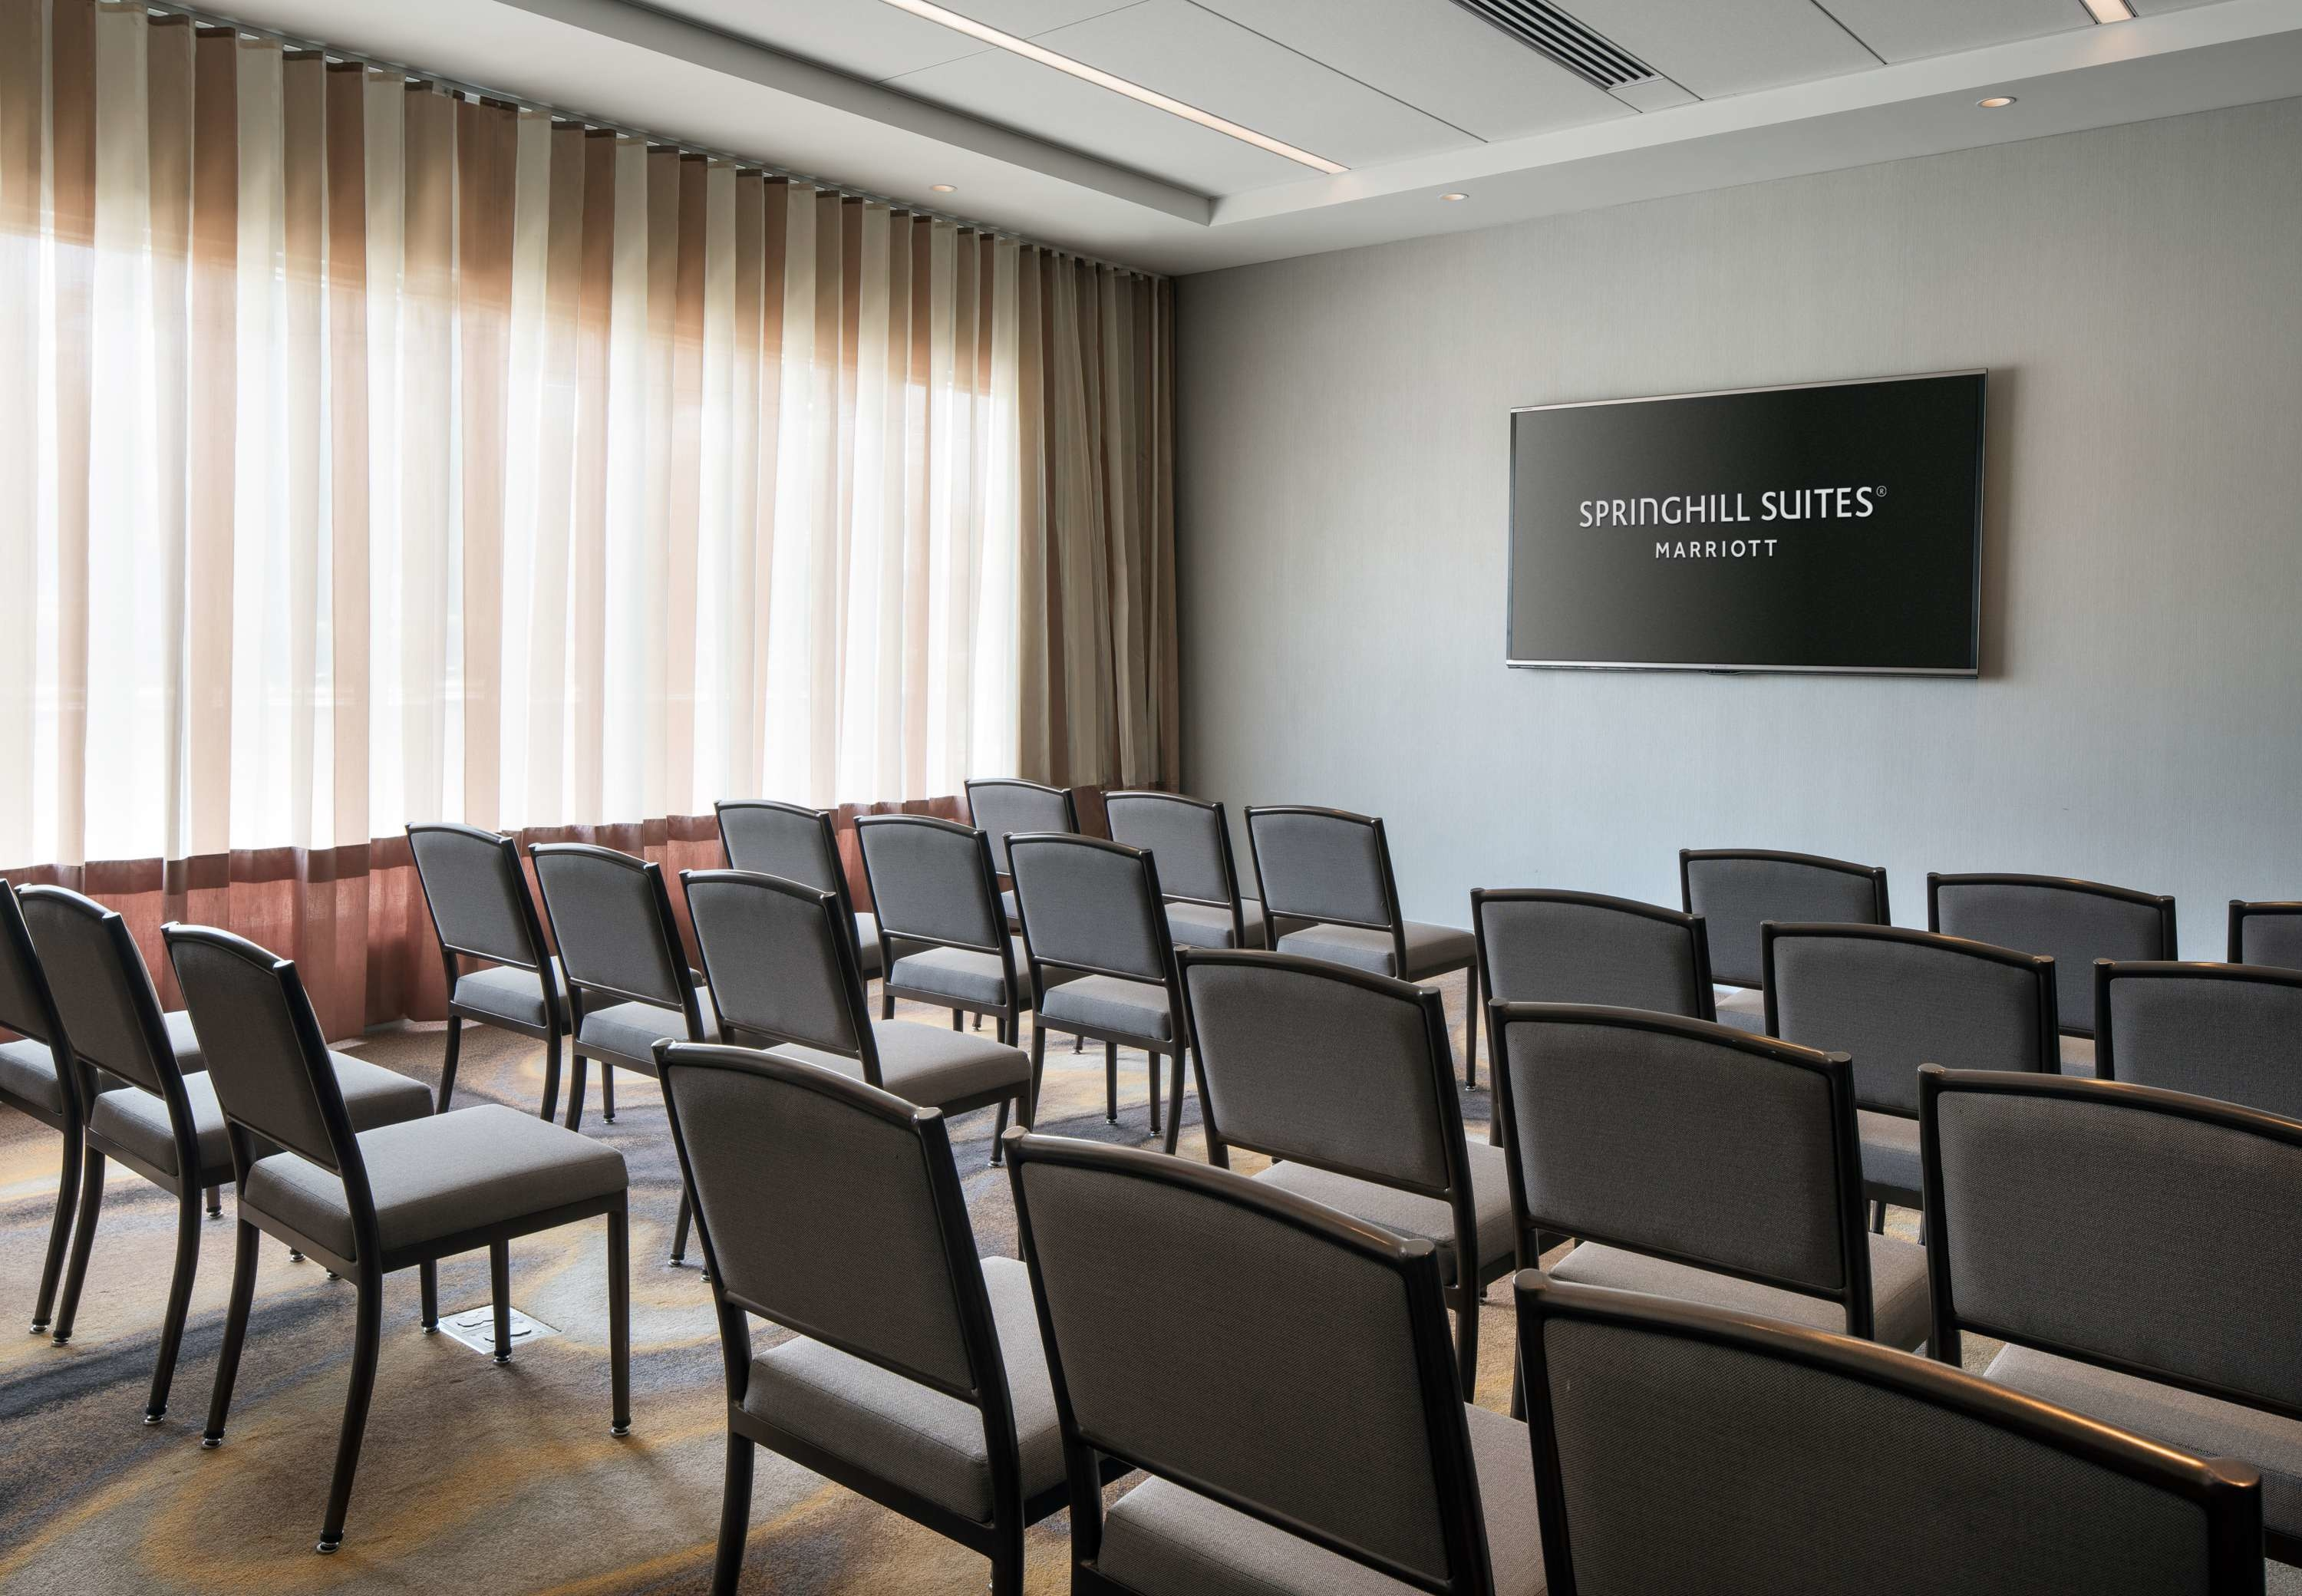 Meeting Space Theater Setup - If you're planning to host an intimate presentation or lecture, our conference room in Burbank, California is the ideal solution. High-quality audiovisual equipment and h